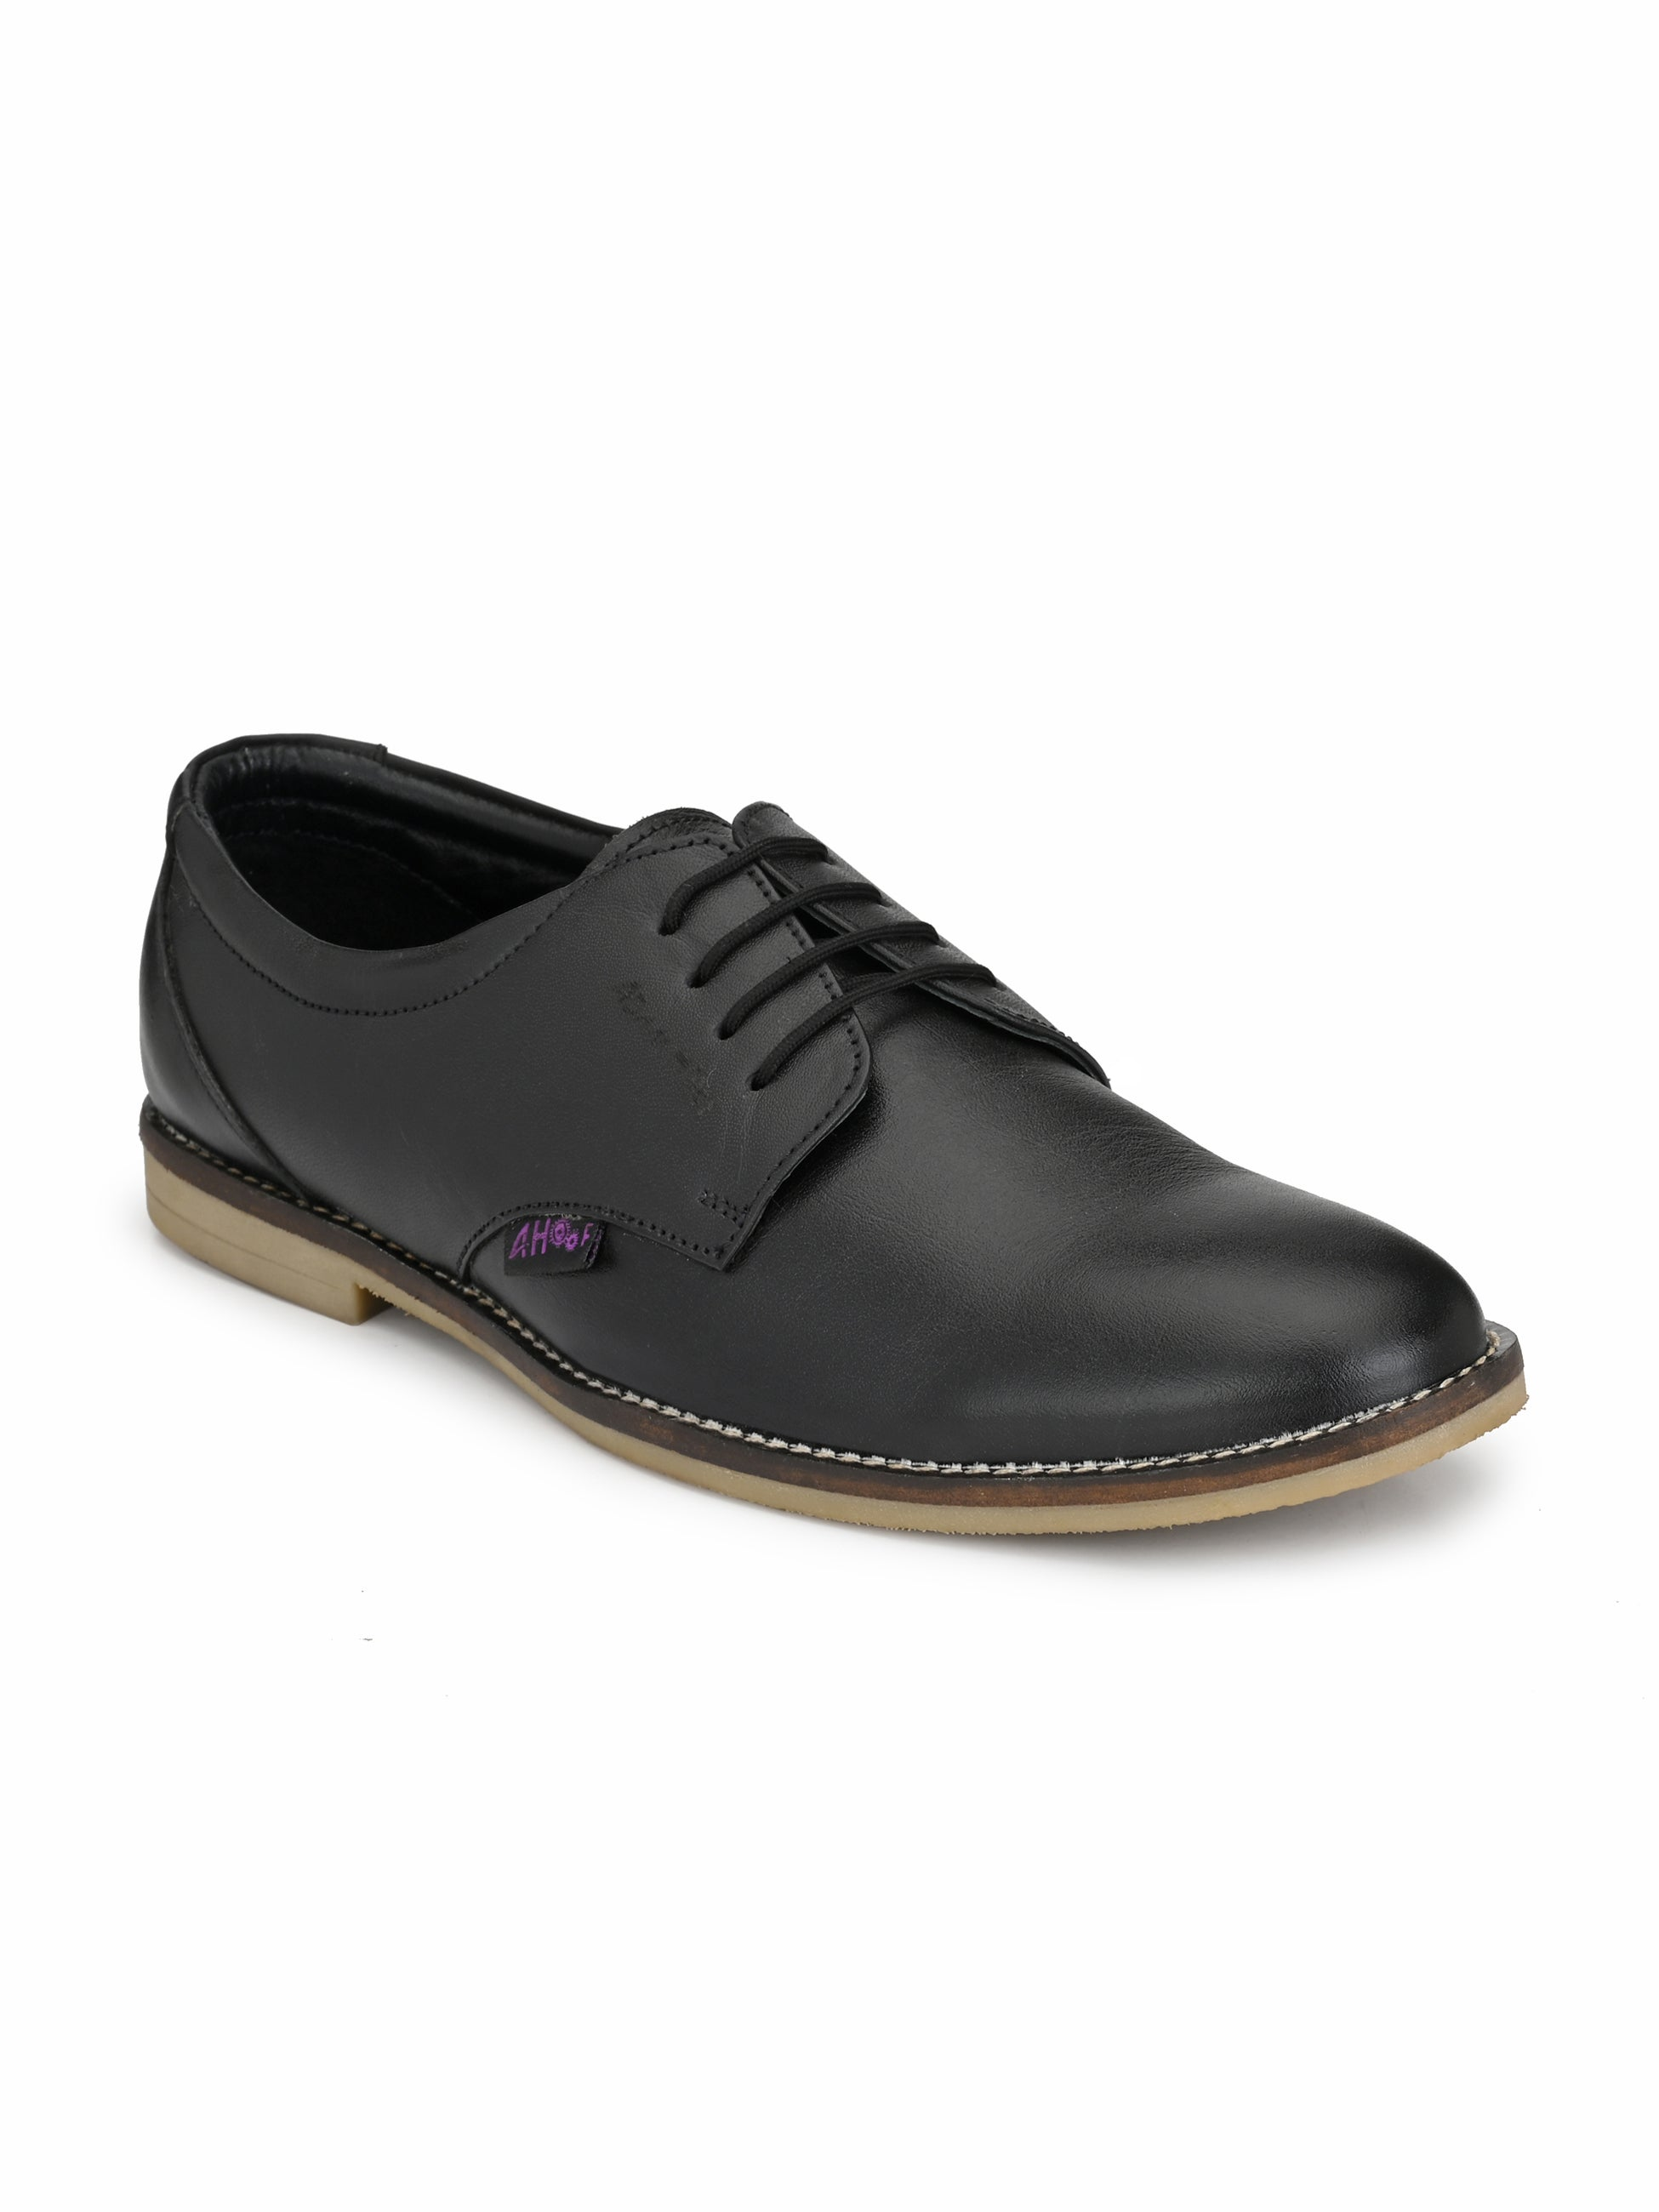 Quento Black Leather Shoes - shoegaro